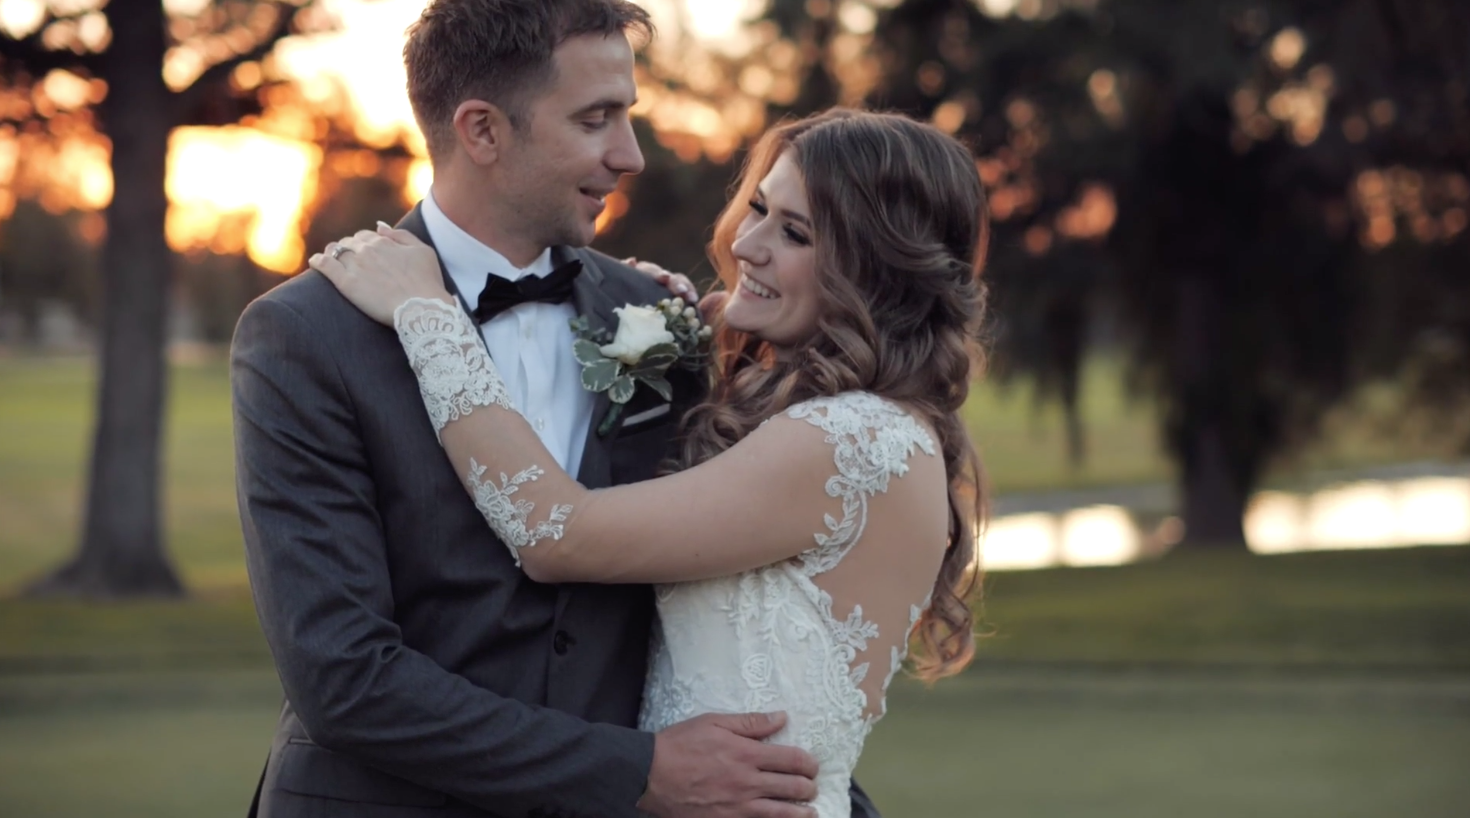 Matt + Anna | Elk Grove, California | Valley Hi Country Club